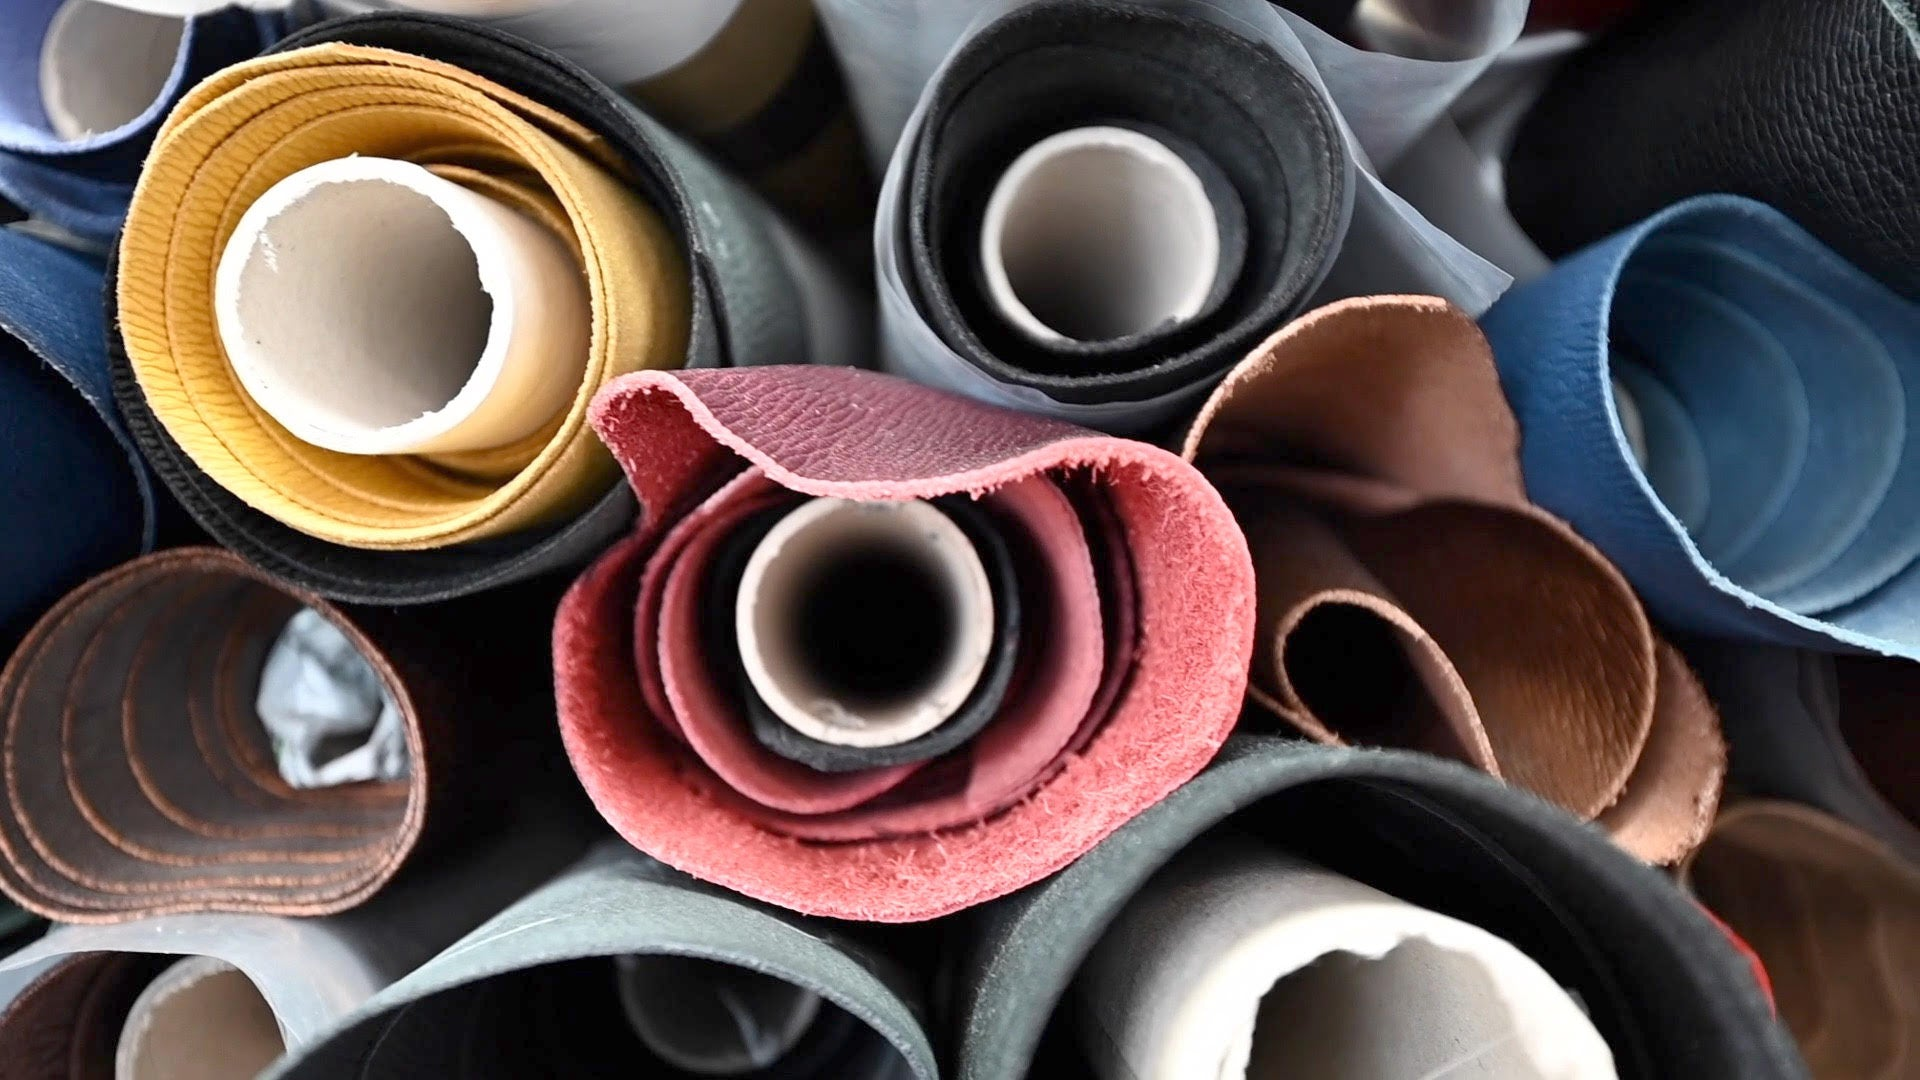 Atelier Verdi rolls of multi-coloured leather at the tannery